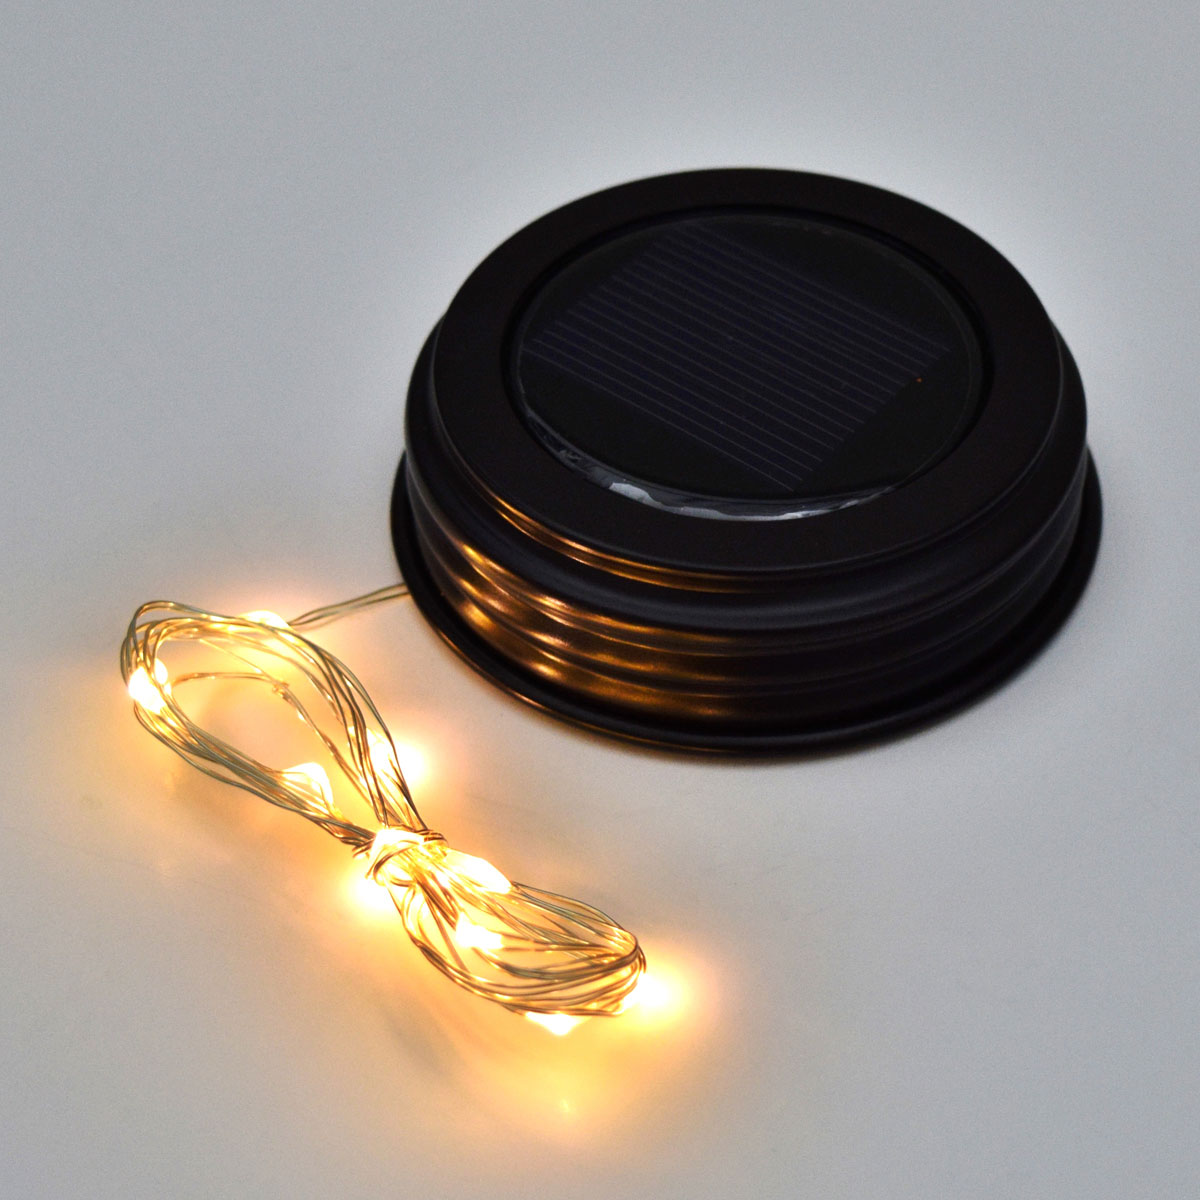 Fairy Light Mason Jar Lid - Solar Powered - LED